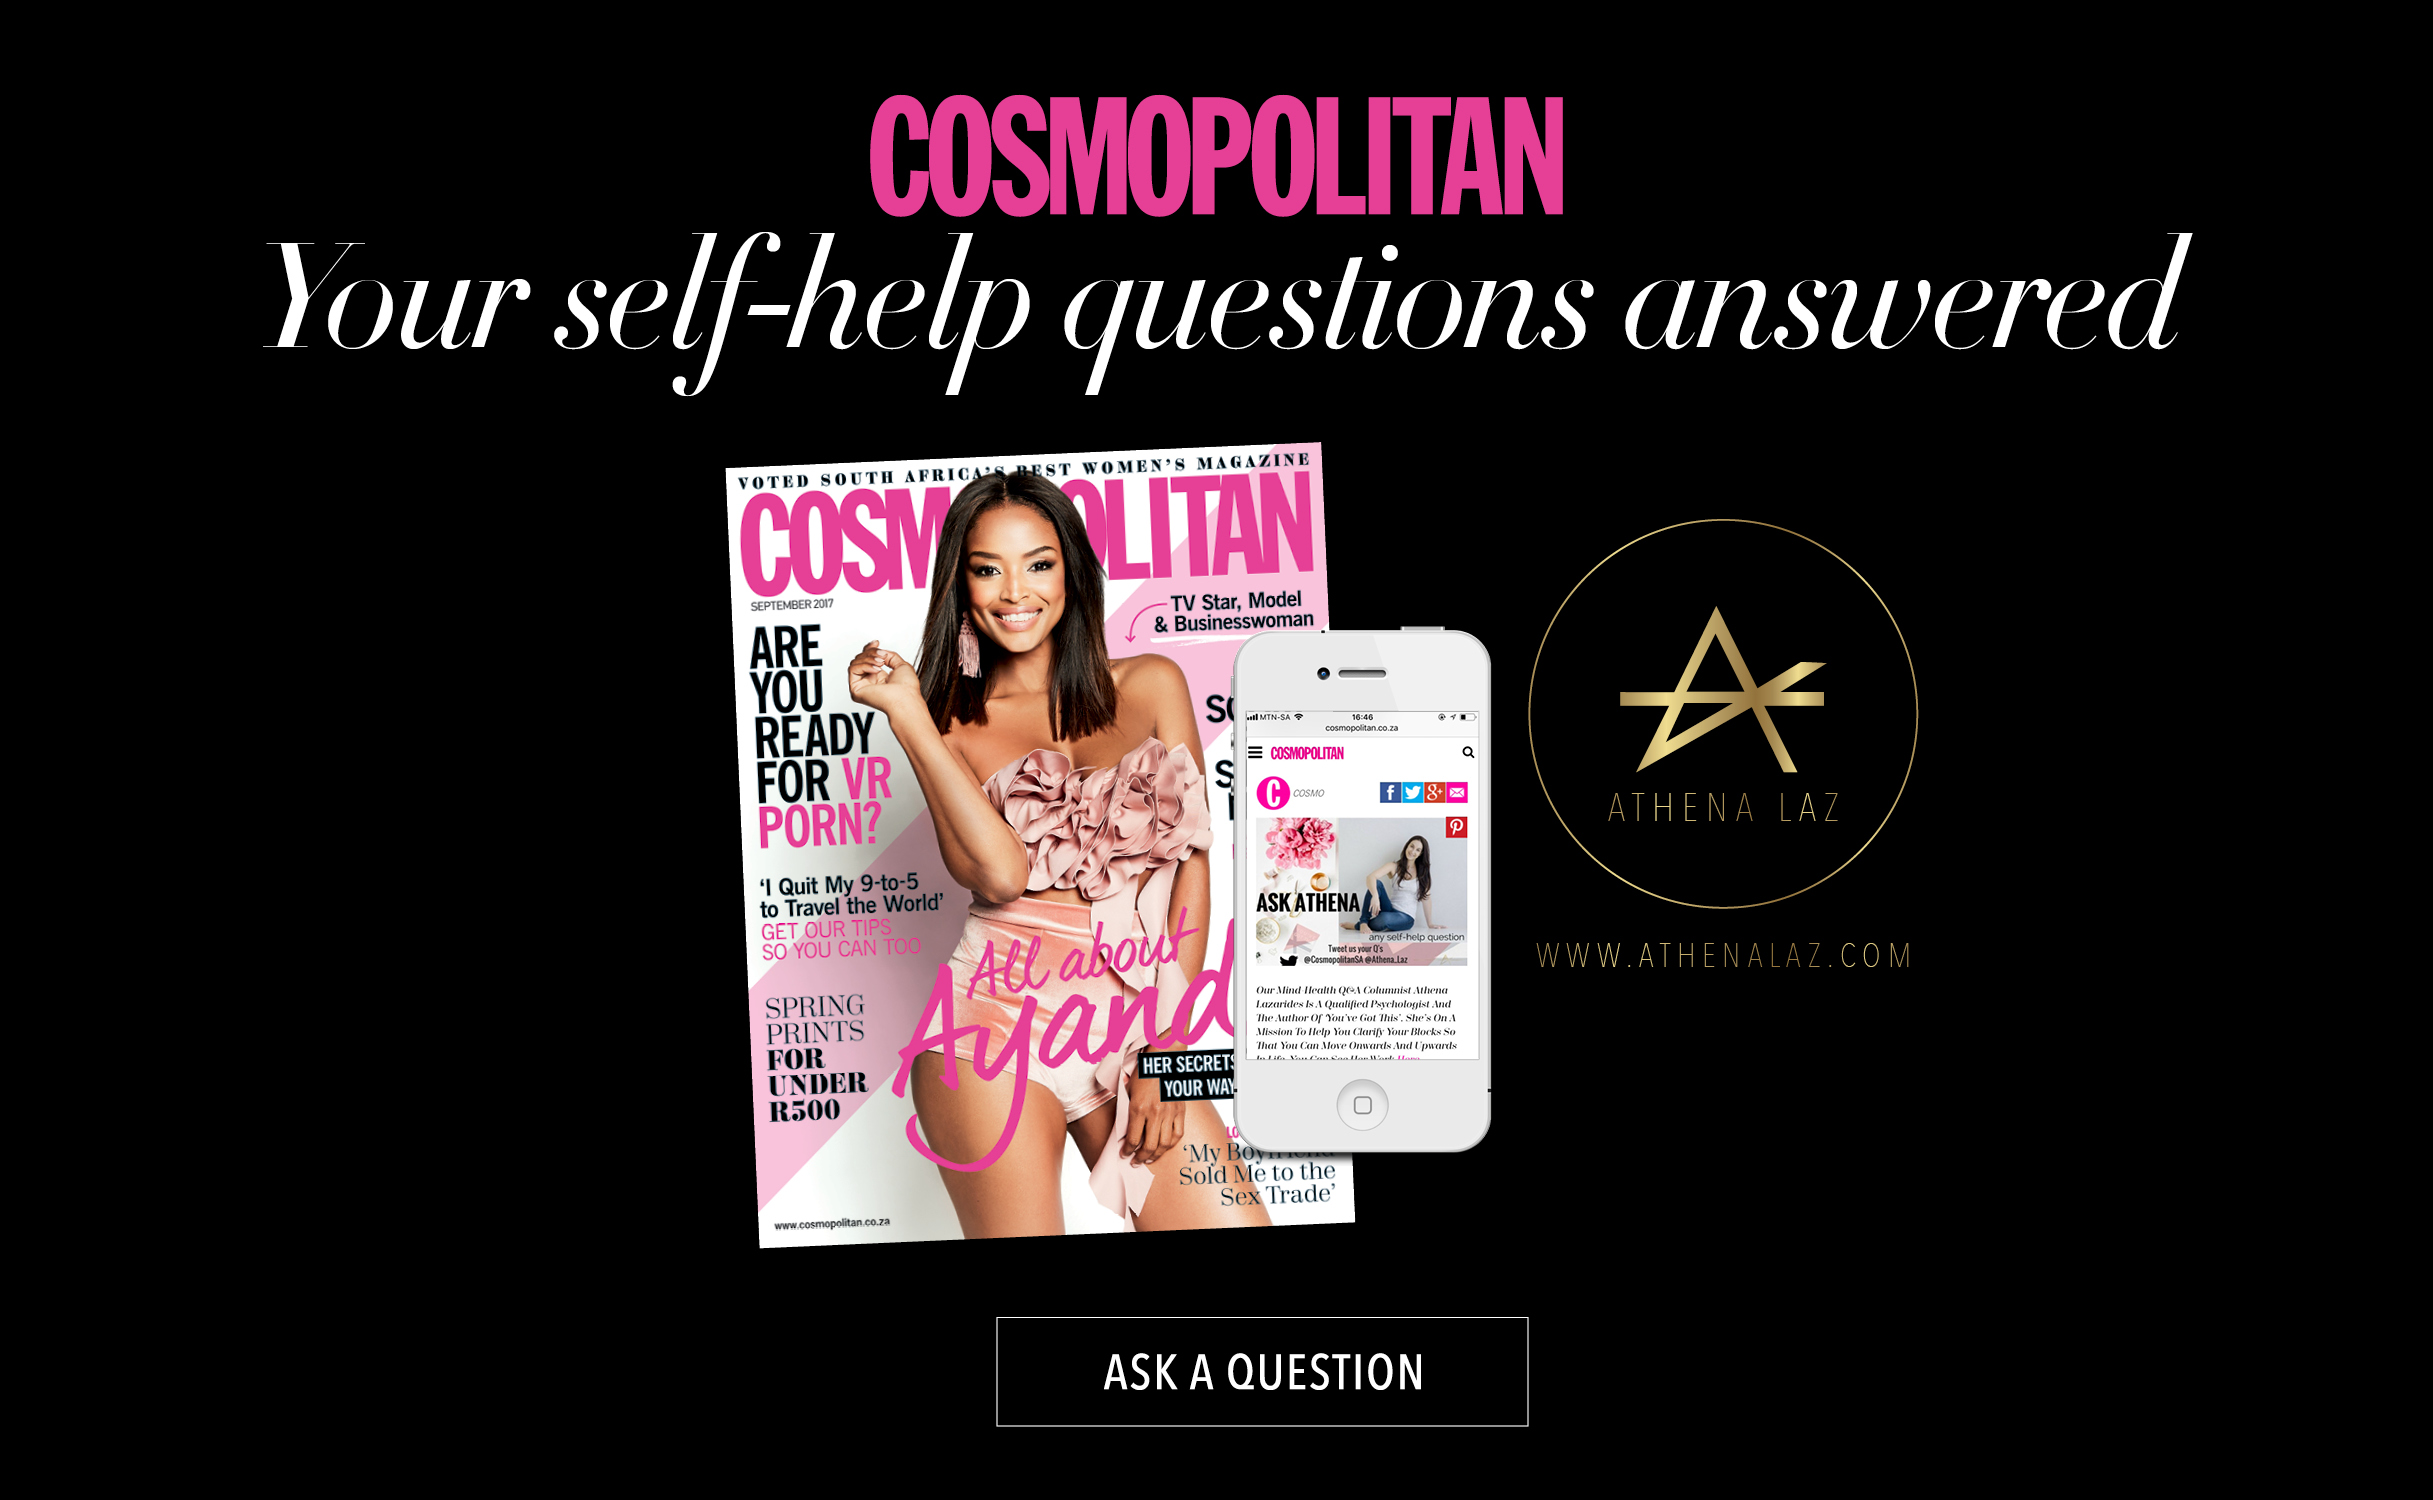 Athena Laz writes a weekly column for Cosmopolitan Magazine